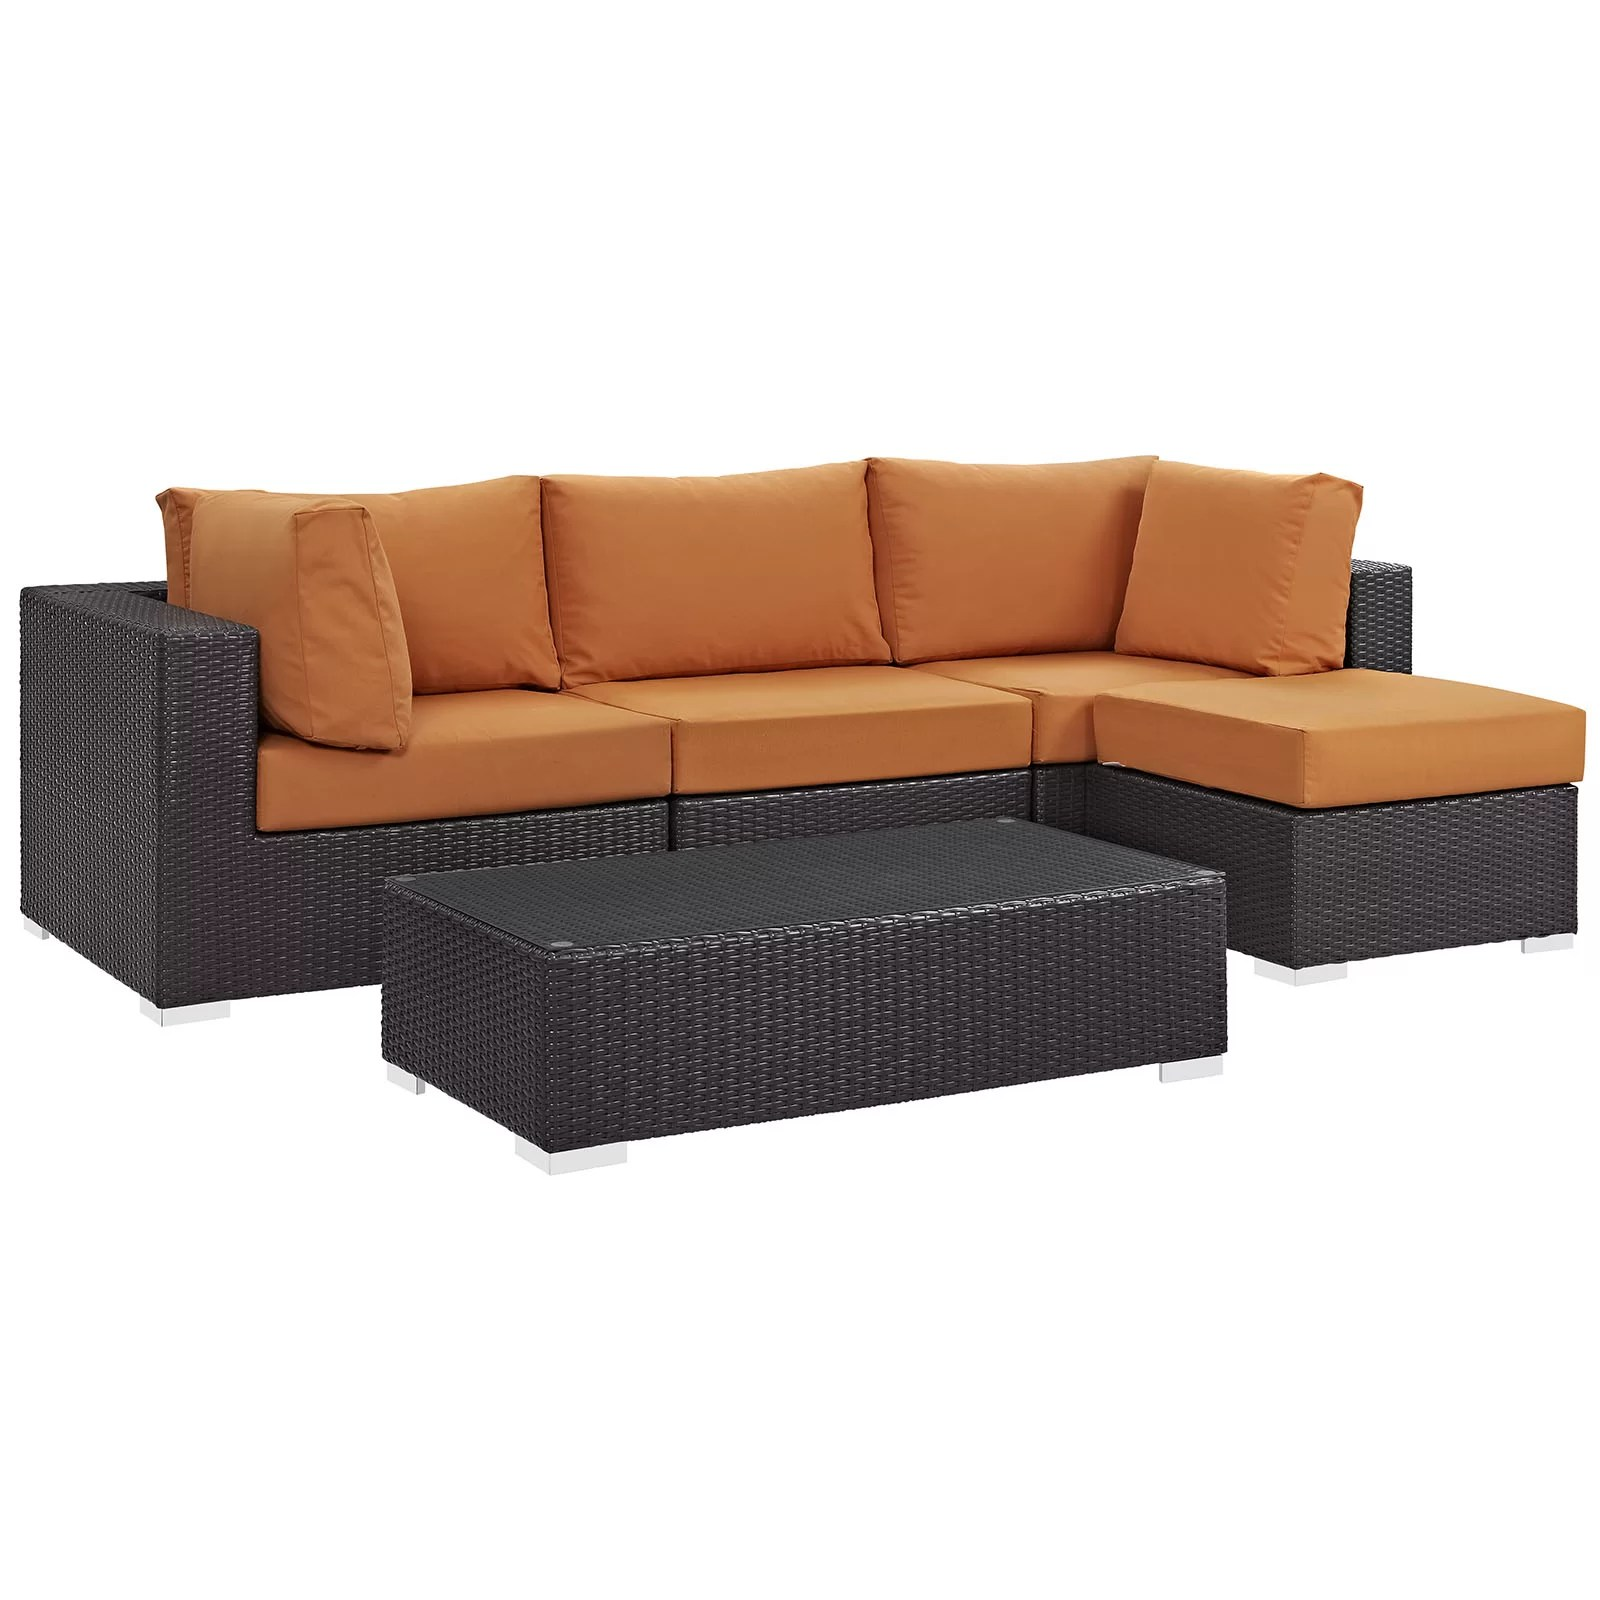 Sofa Polyrattan Brentwood 5 Piece Rattan Sectional Set With Cushions